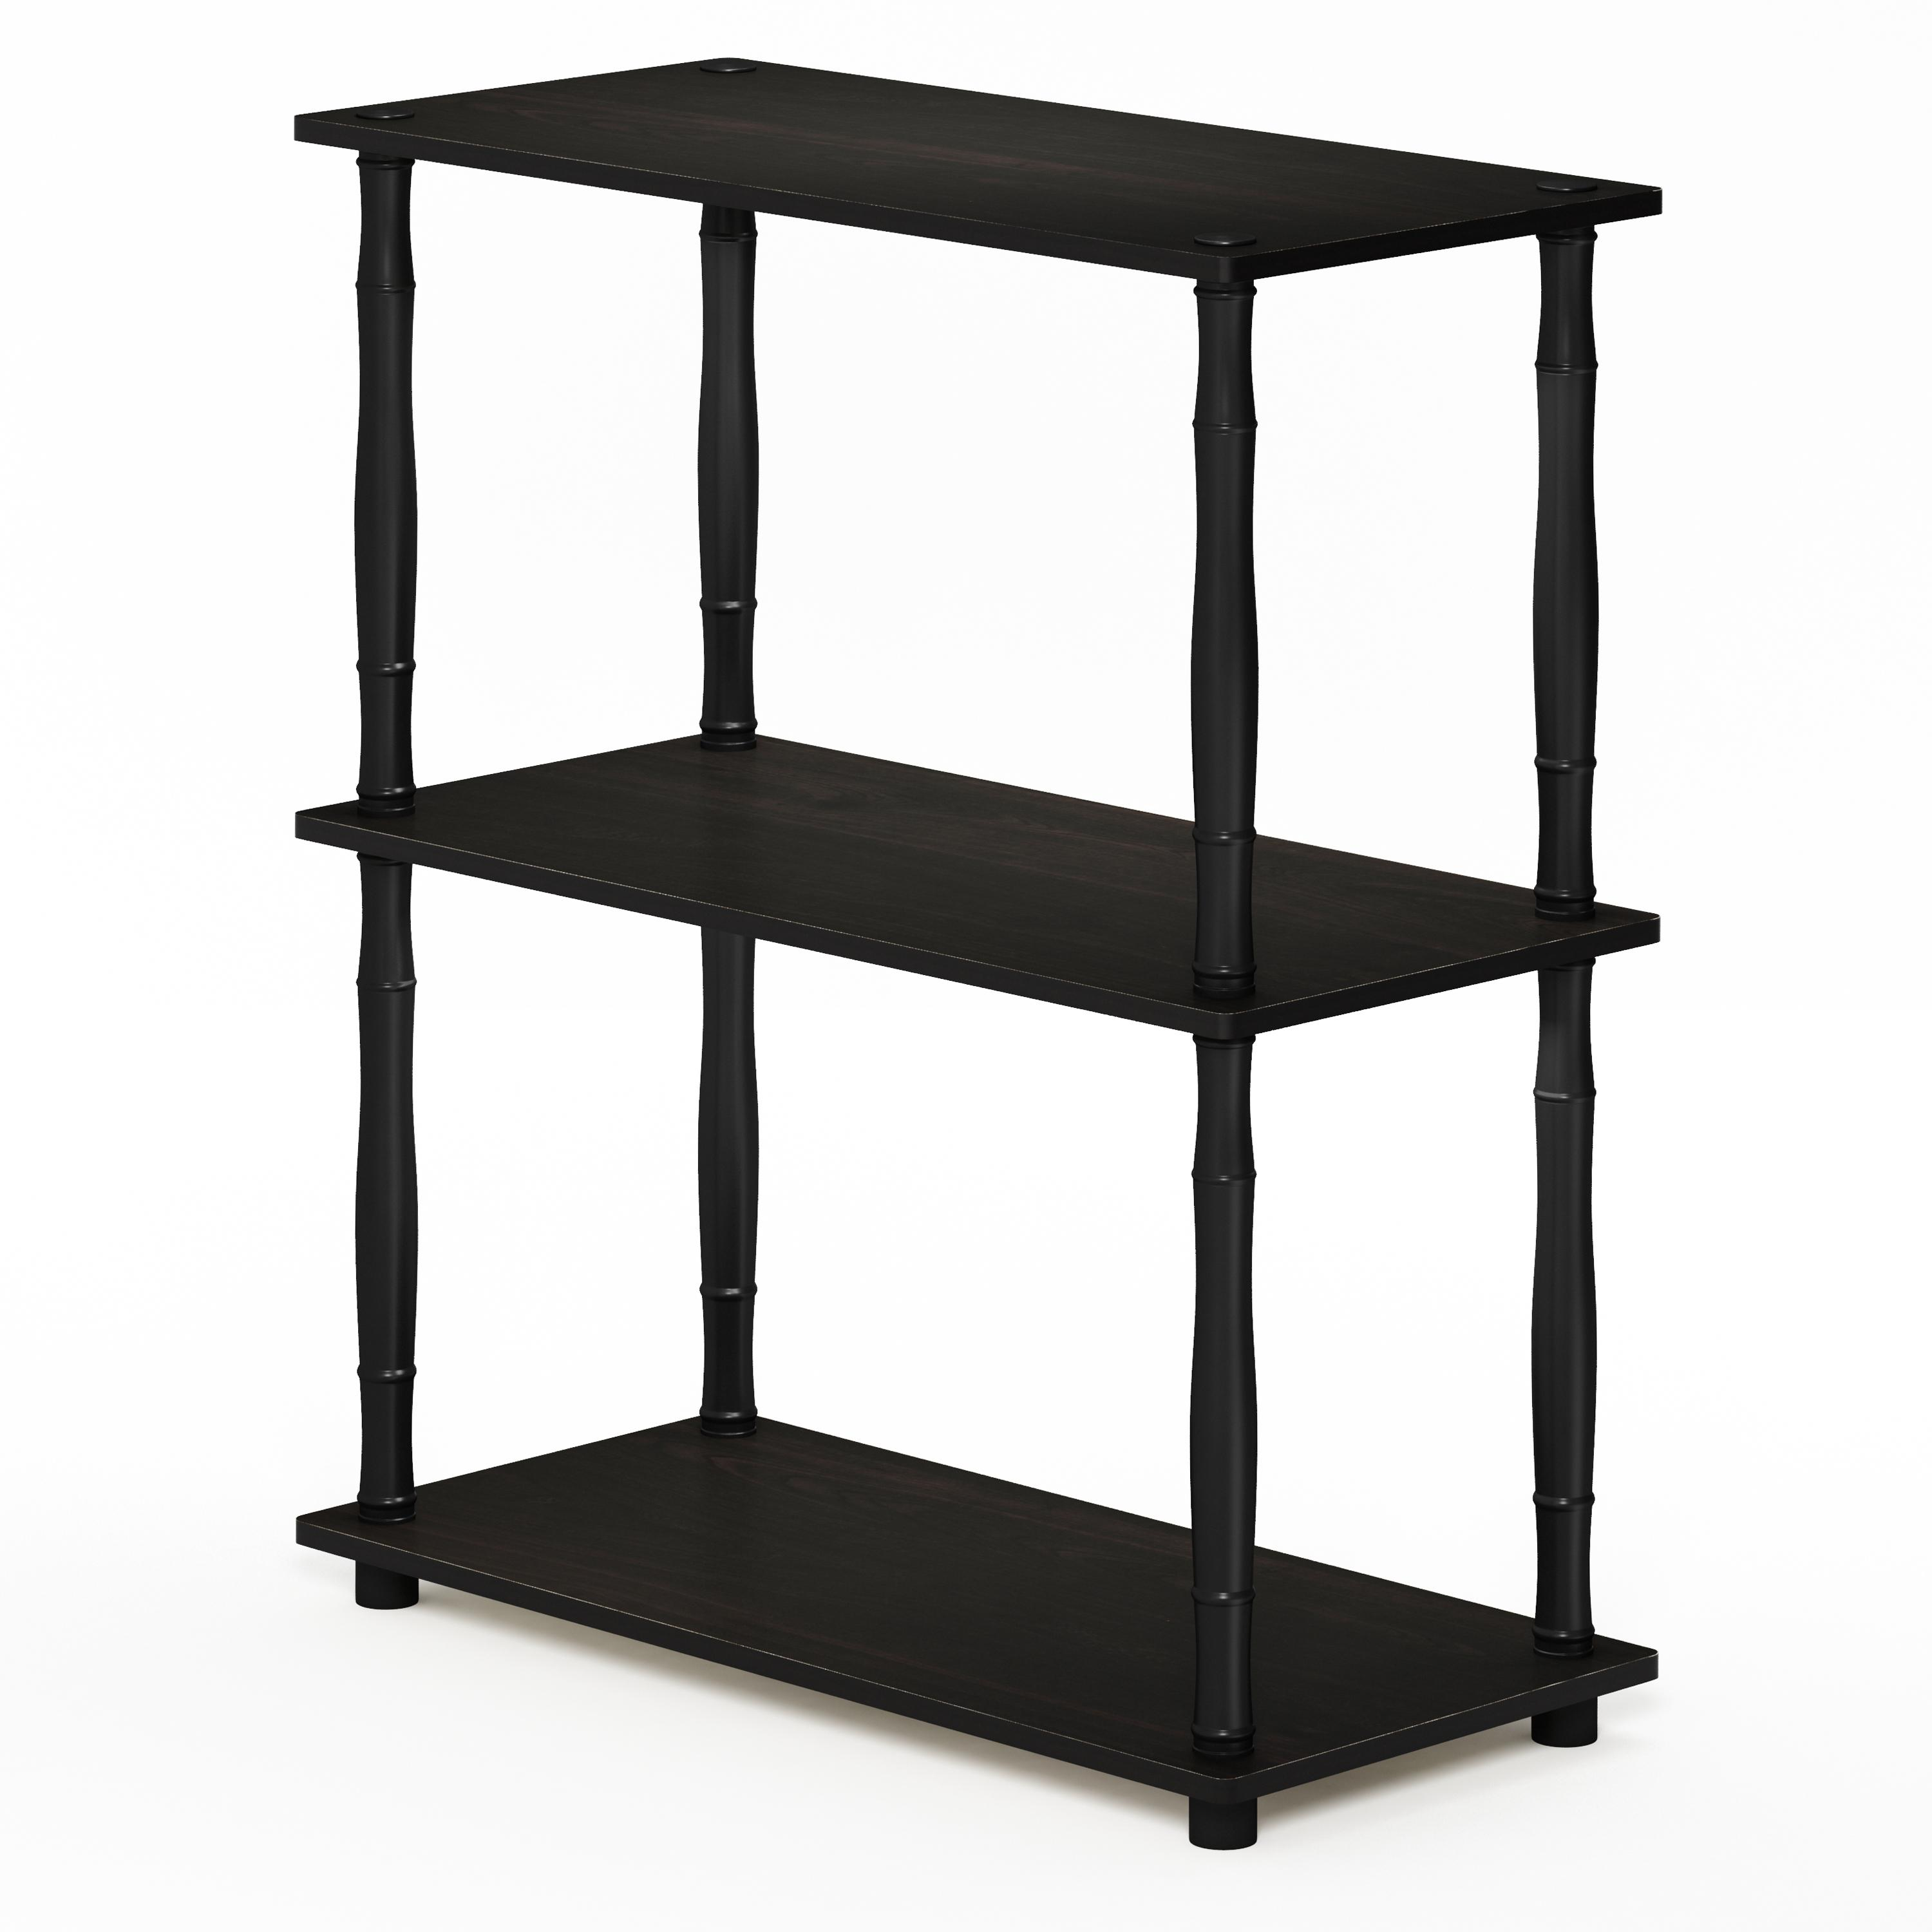 Furinno Turn-N-Tube 3-Tier Compact Multipurpose Shelf Display Rack with Classic Tube, Espresso/Black - image 4 de 4